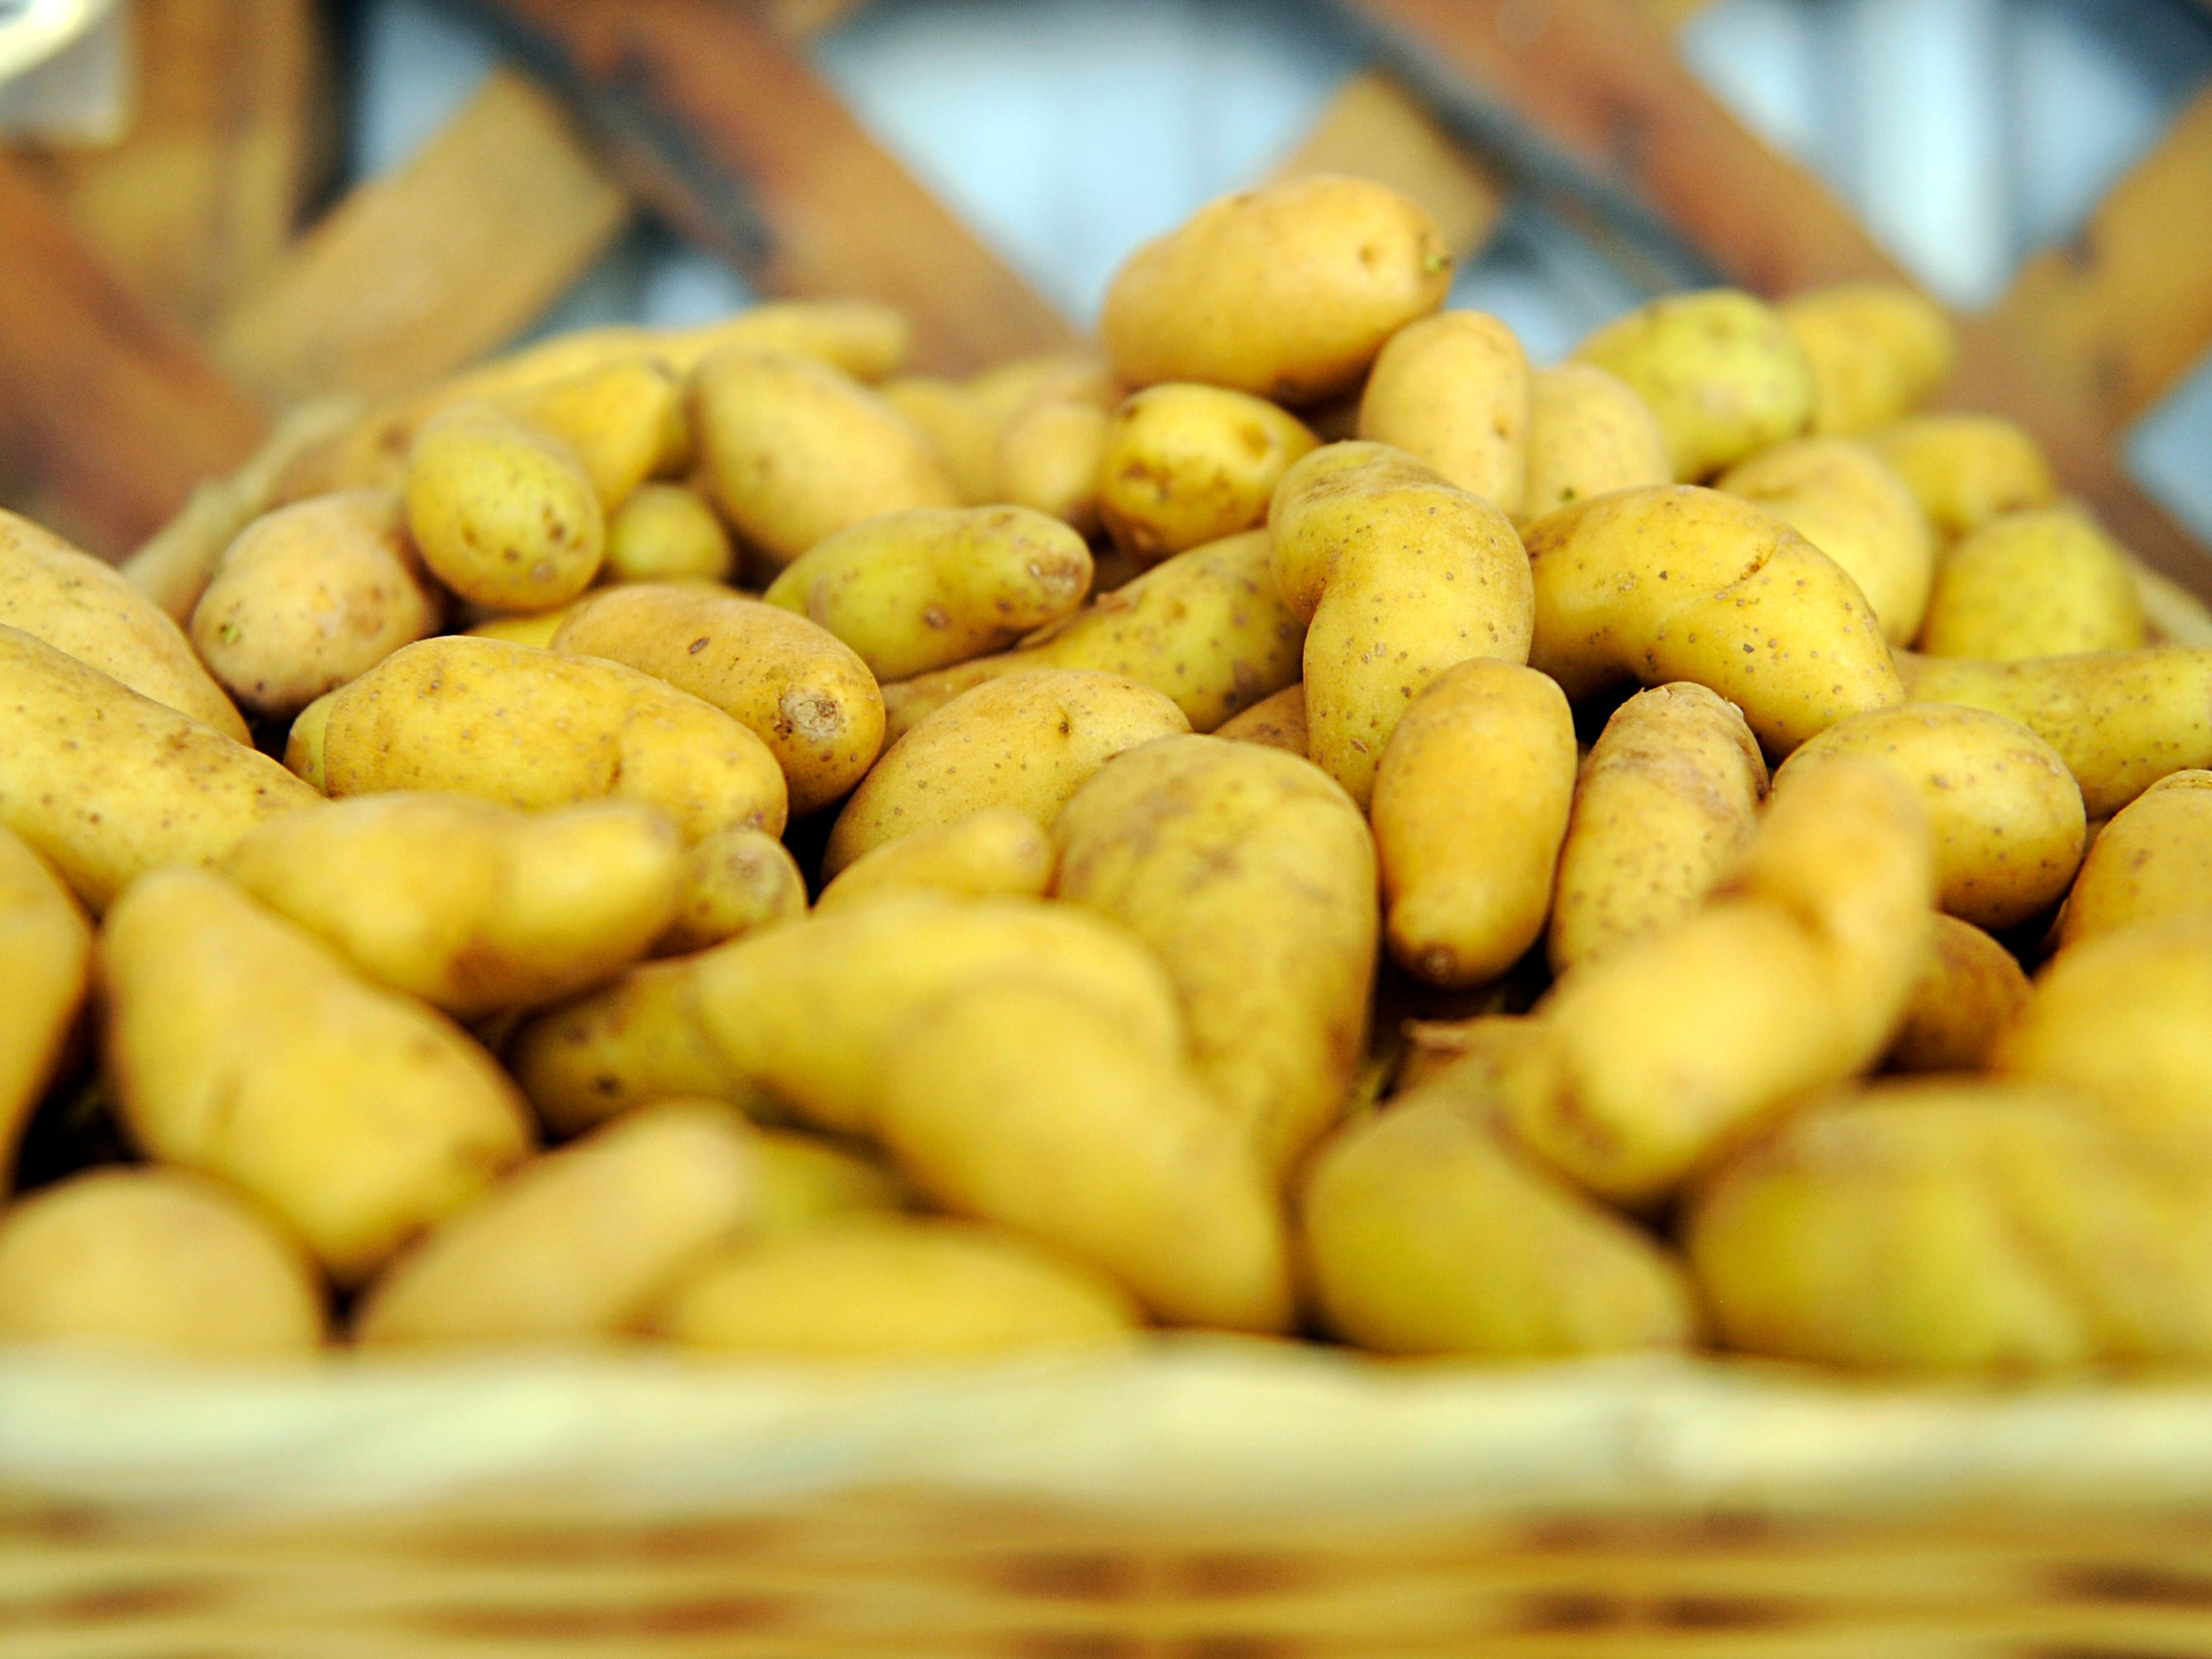 Fingerling potatoes available at Muzzarelli Farms on East Oak Road in Vineland on Thursday, October 4, 2018.